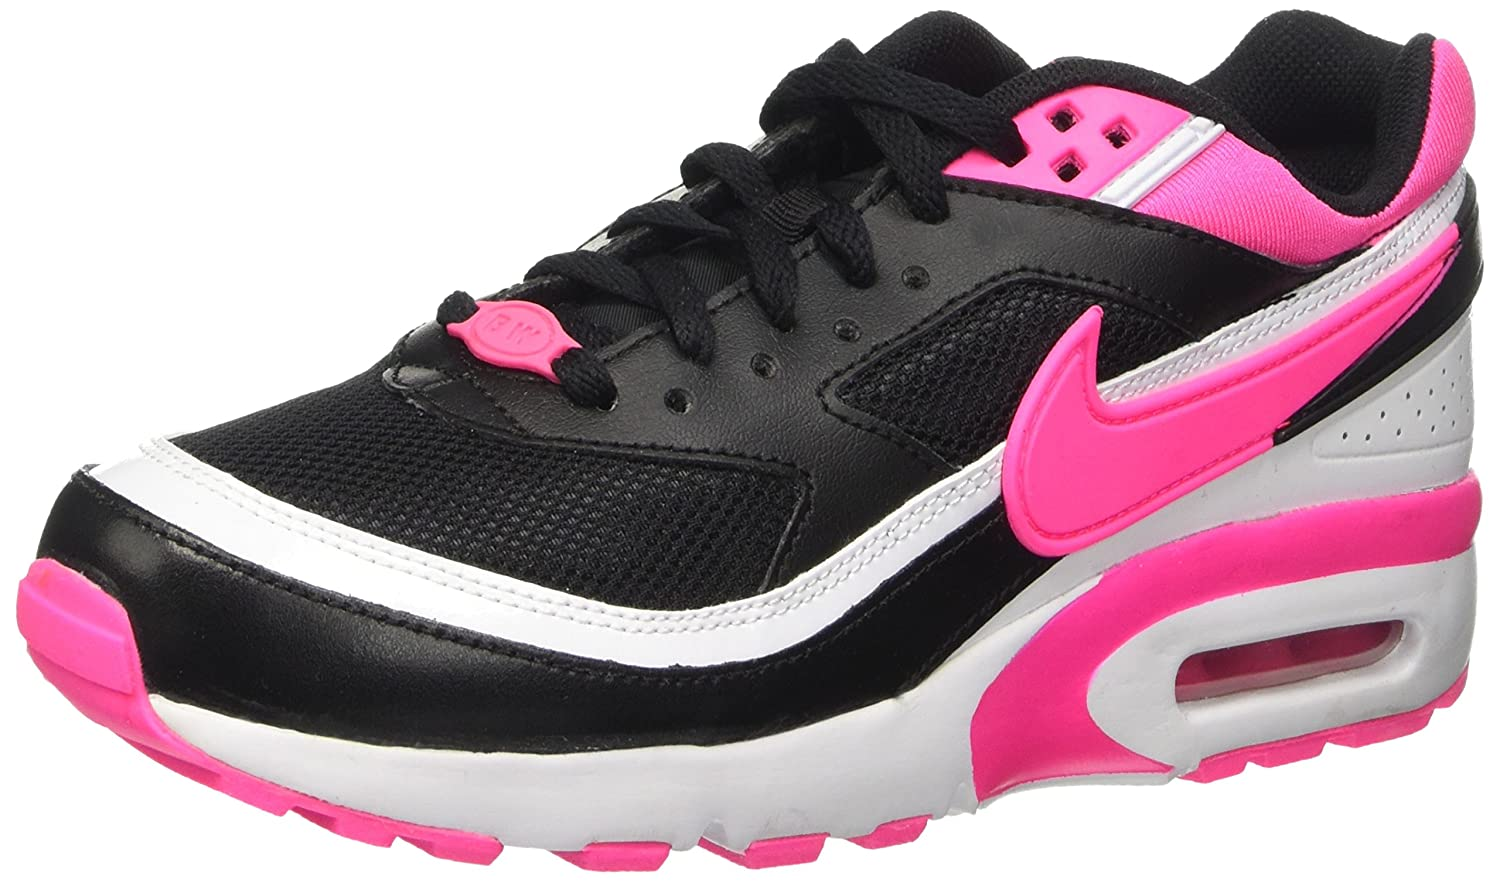 reputable site 94e0b 41a26 Amazon.com   Nike Air Max BW (GS) Girls Sneaker   Fashion Sneakers